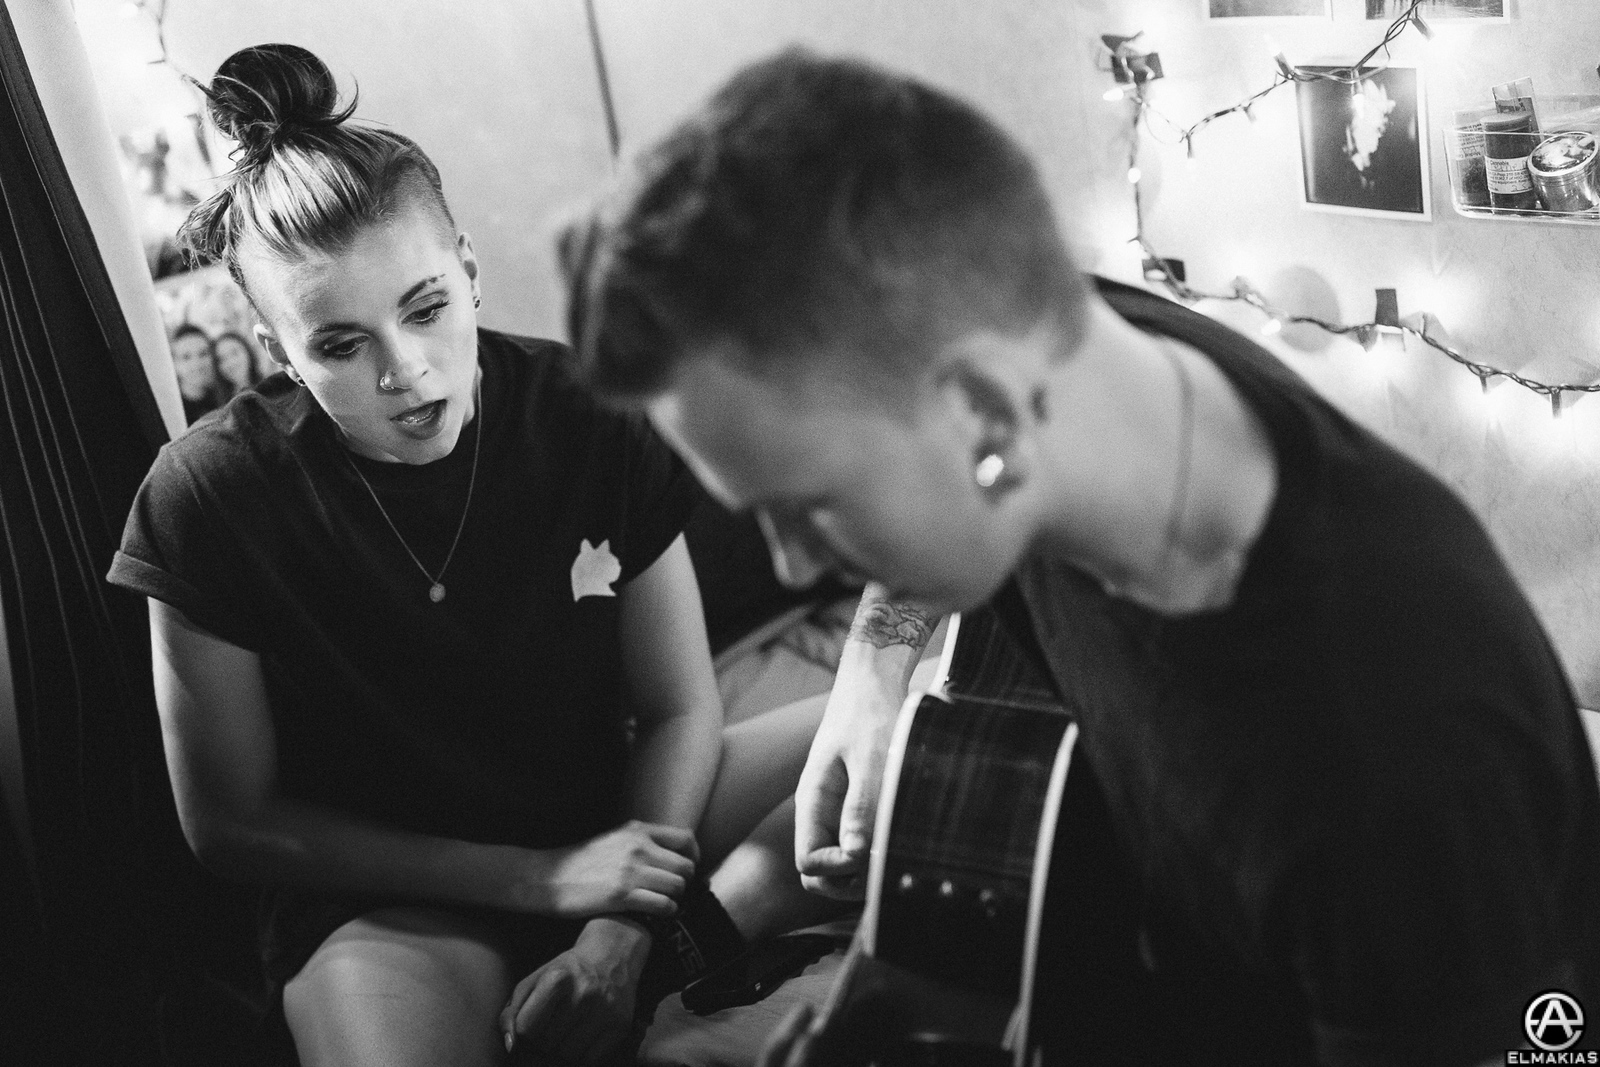 Lynn Gunn and Alex Babinski of PVRIS at Vans Warped Tour 2015 by Adam Elmakias